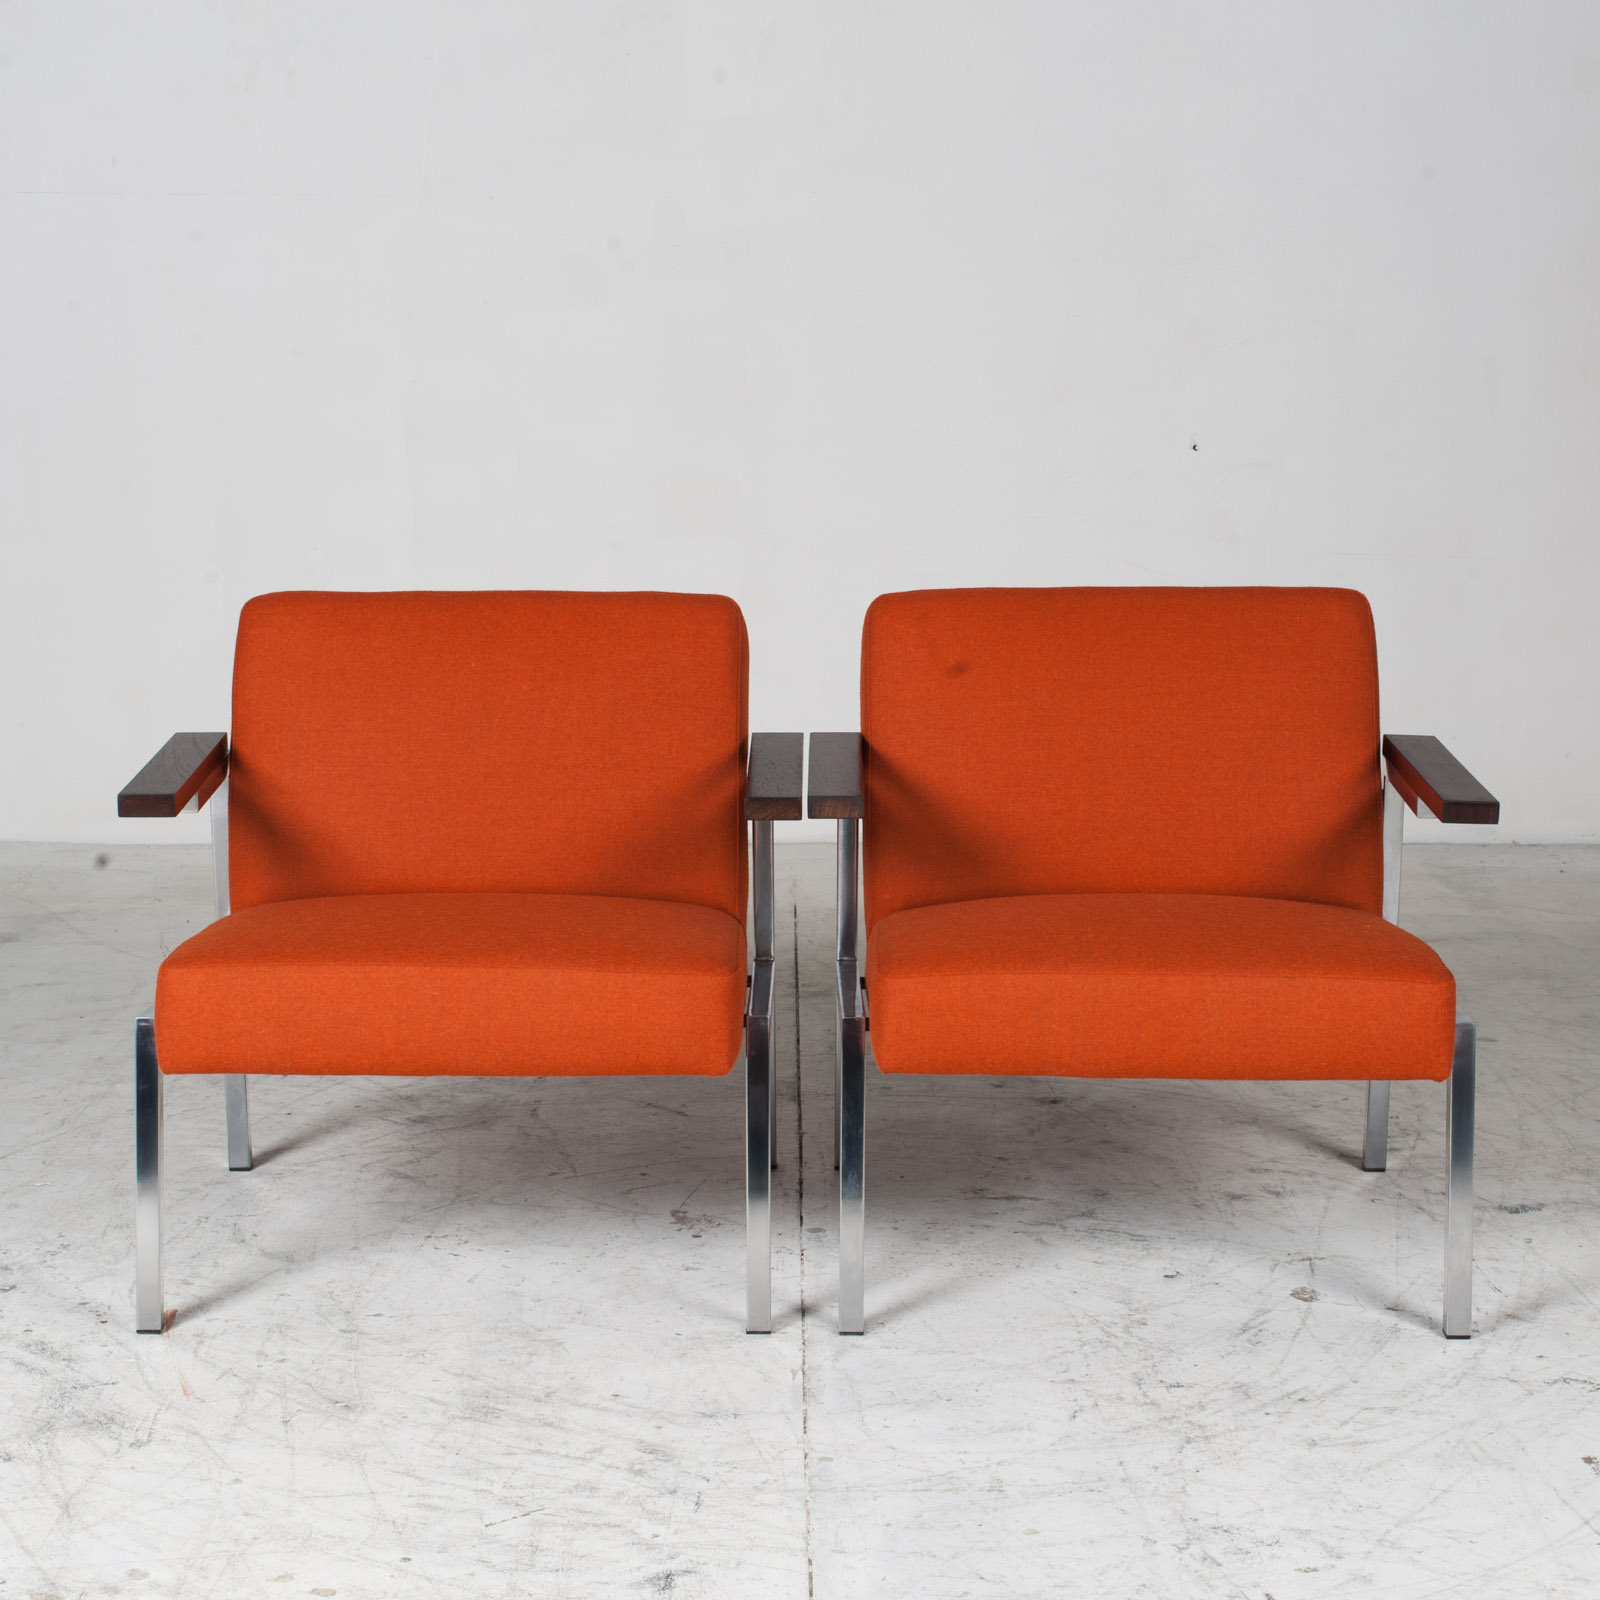 Armchairs With Metal Frame & Rosewood Arms In Original Upholstery, 1960s, Netherlands 11